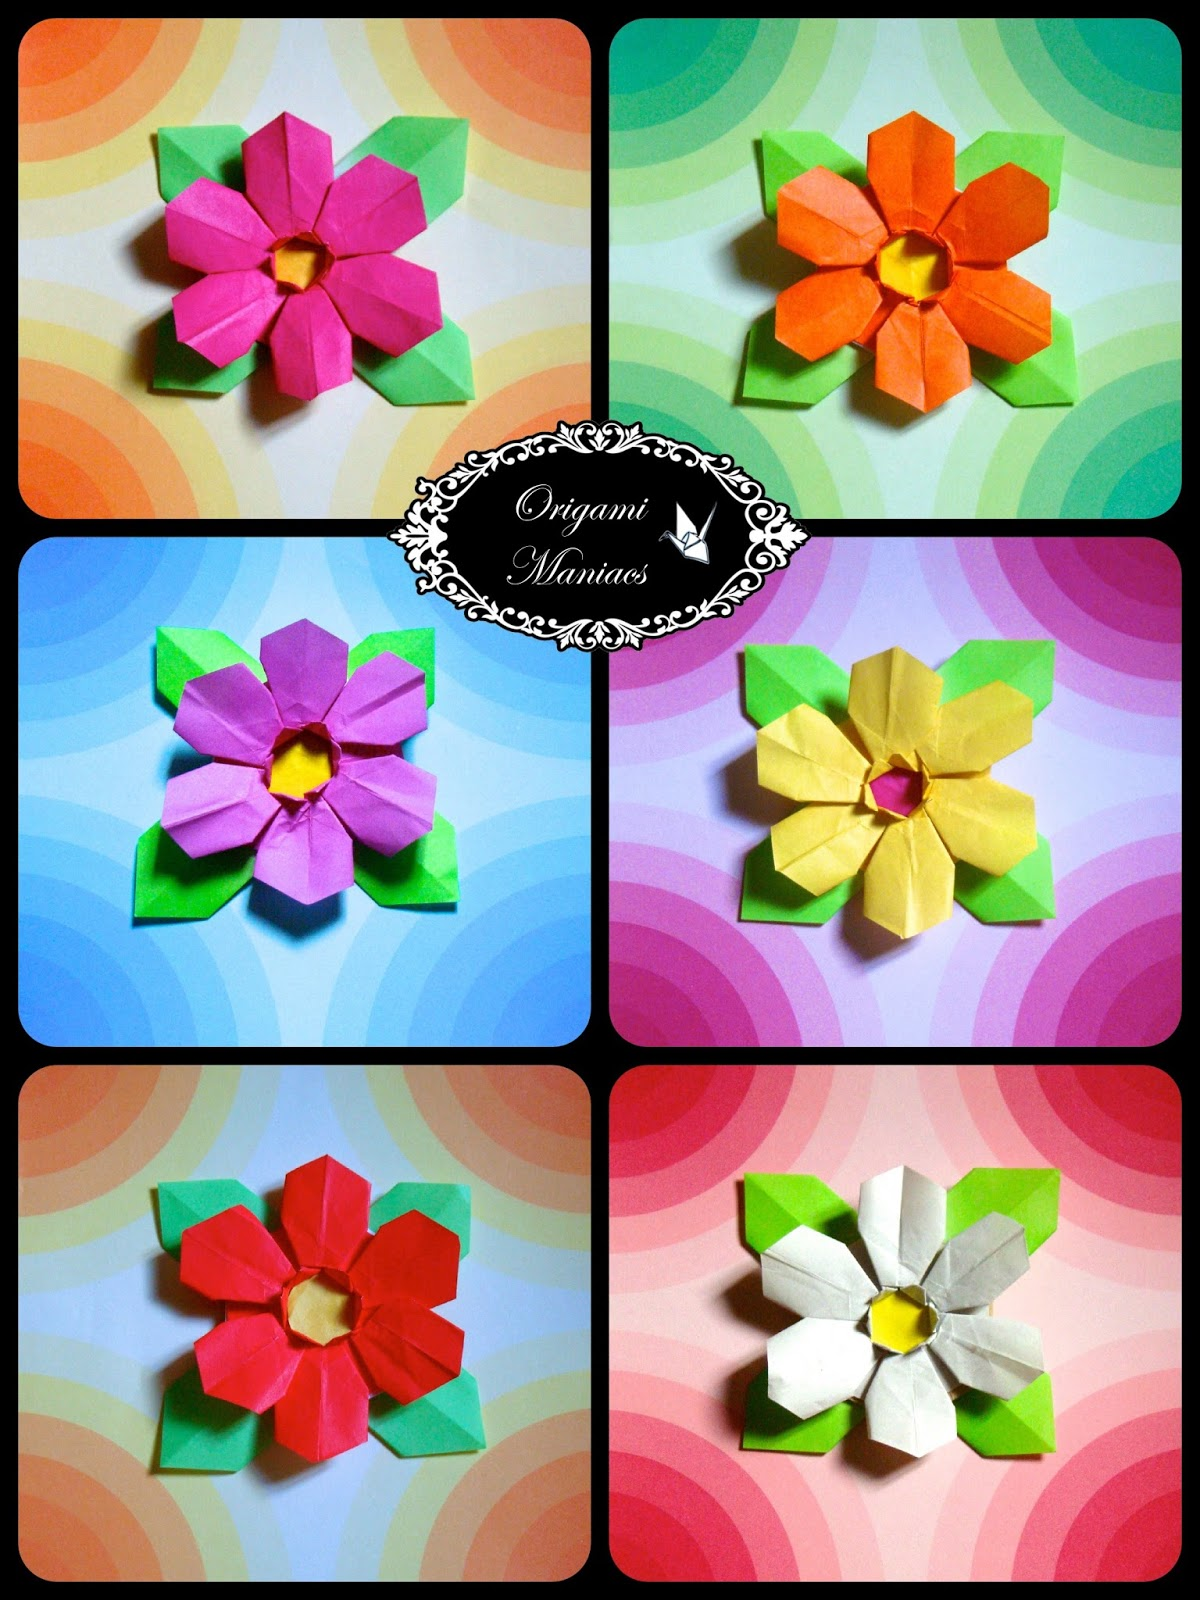 Origami maniacs flor de origami de 6 petalos hello origami maniacsday i want to share with you this beautiful small flower intermediate origami level that is made with a single sheet of paper mightylinksfo